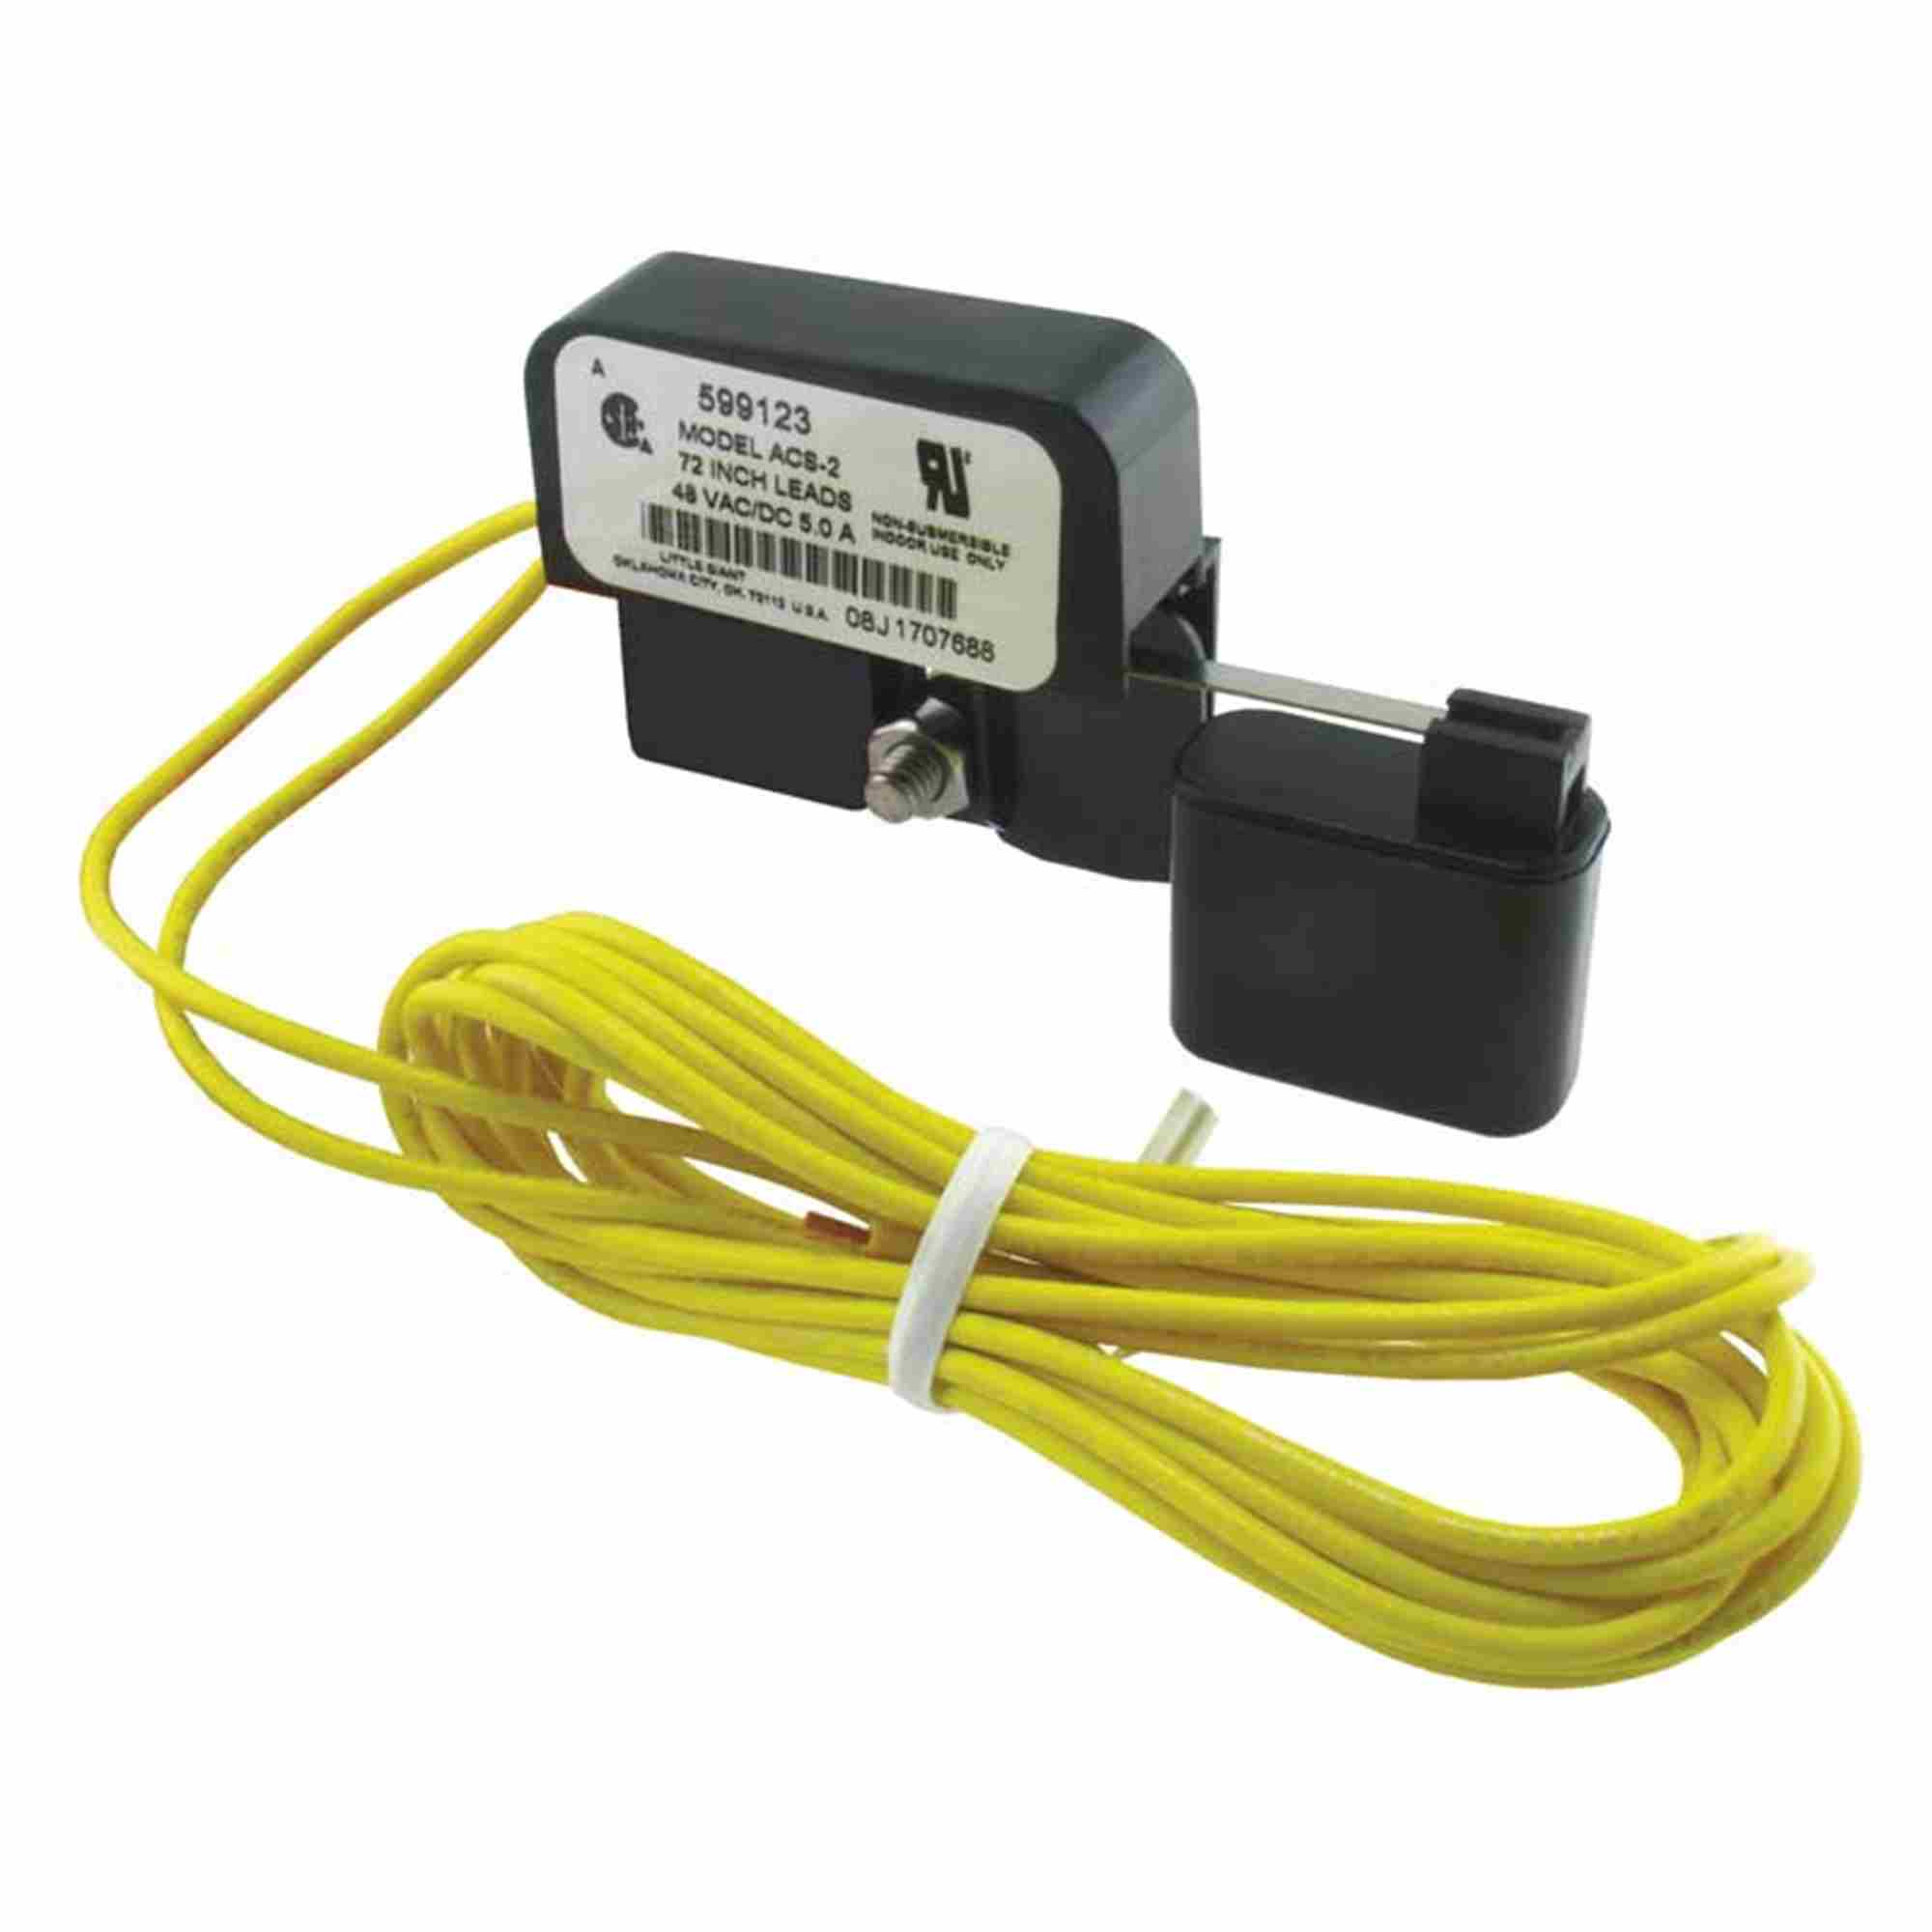 599123 Little Giant Pump  Condensate  Safety Switch